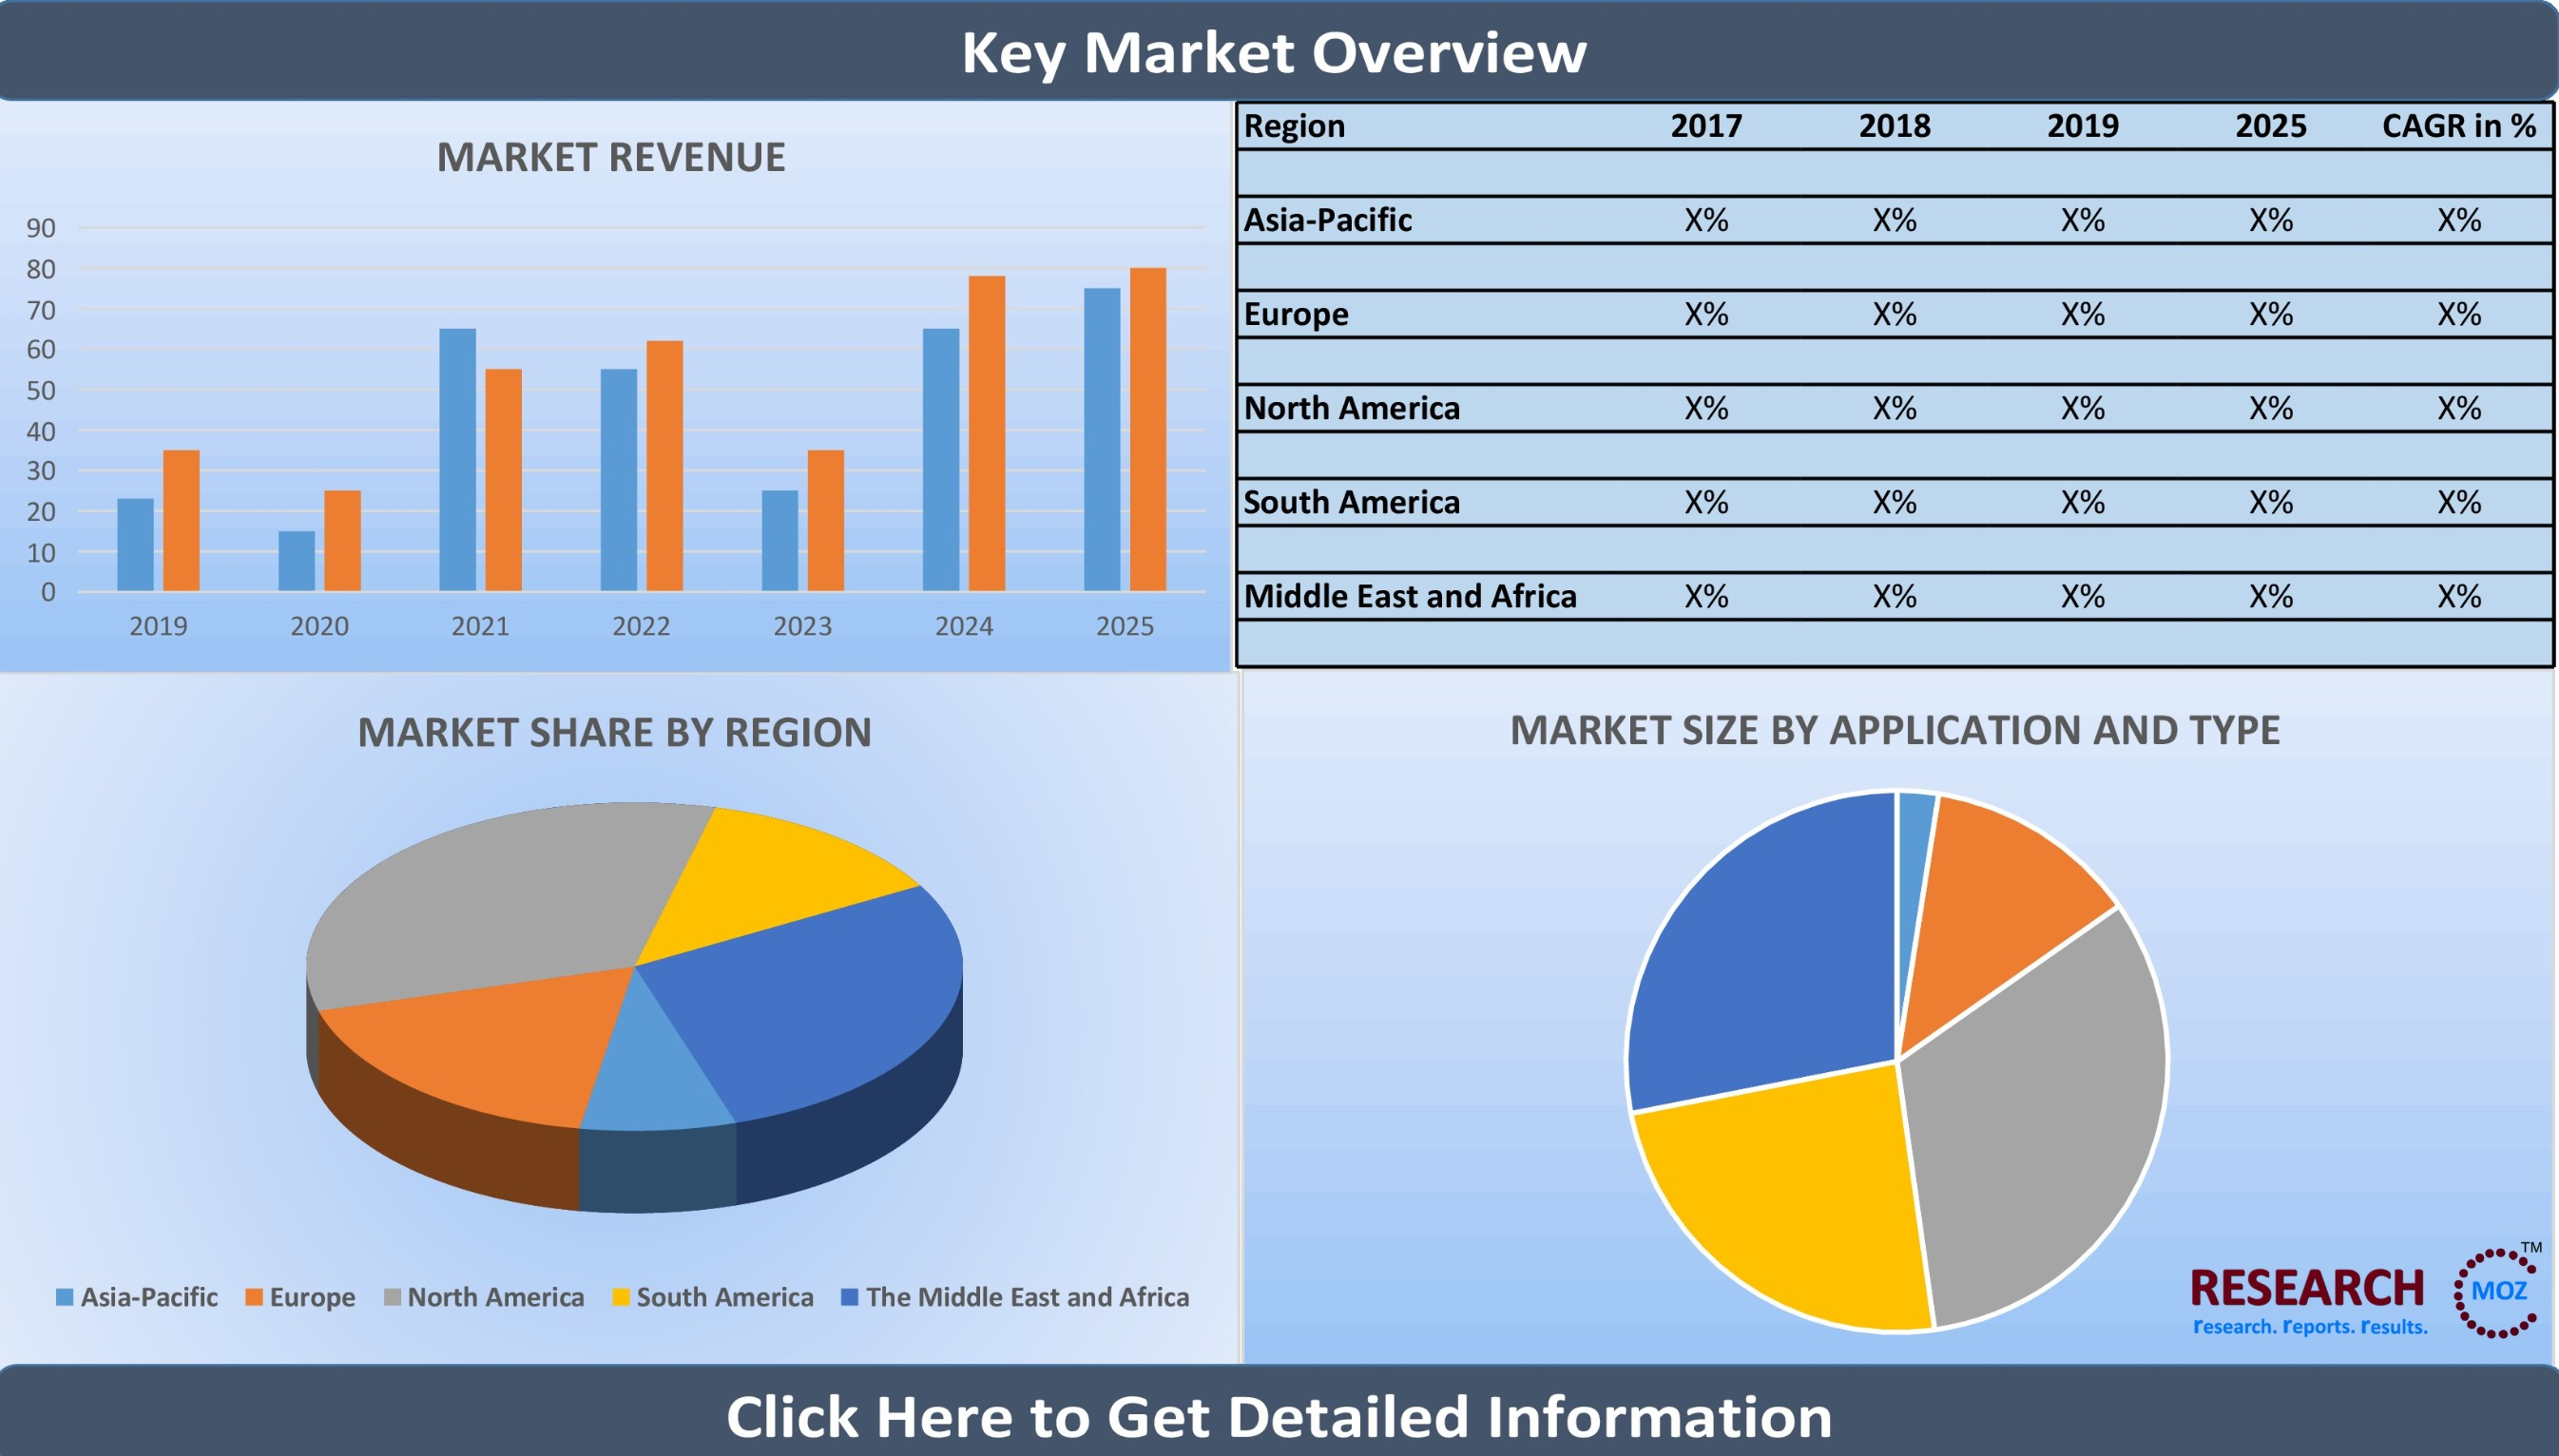 Pediatric Interventional Cardiology Market